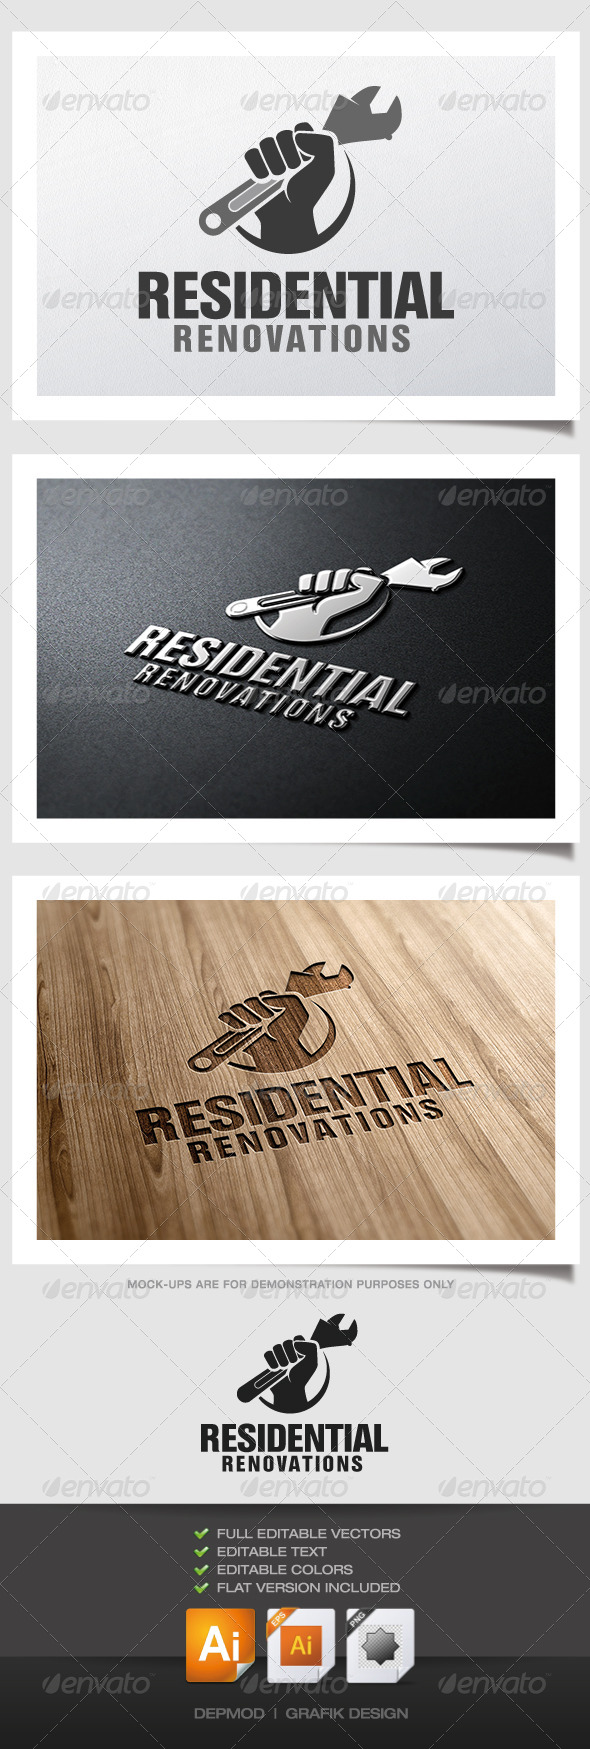 GraphicRiver Residential Renovations Logo 5053449